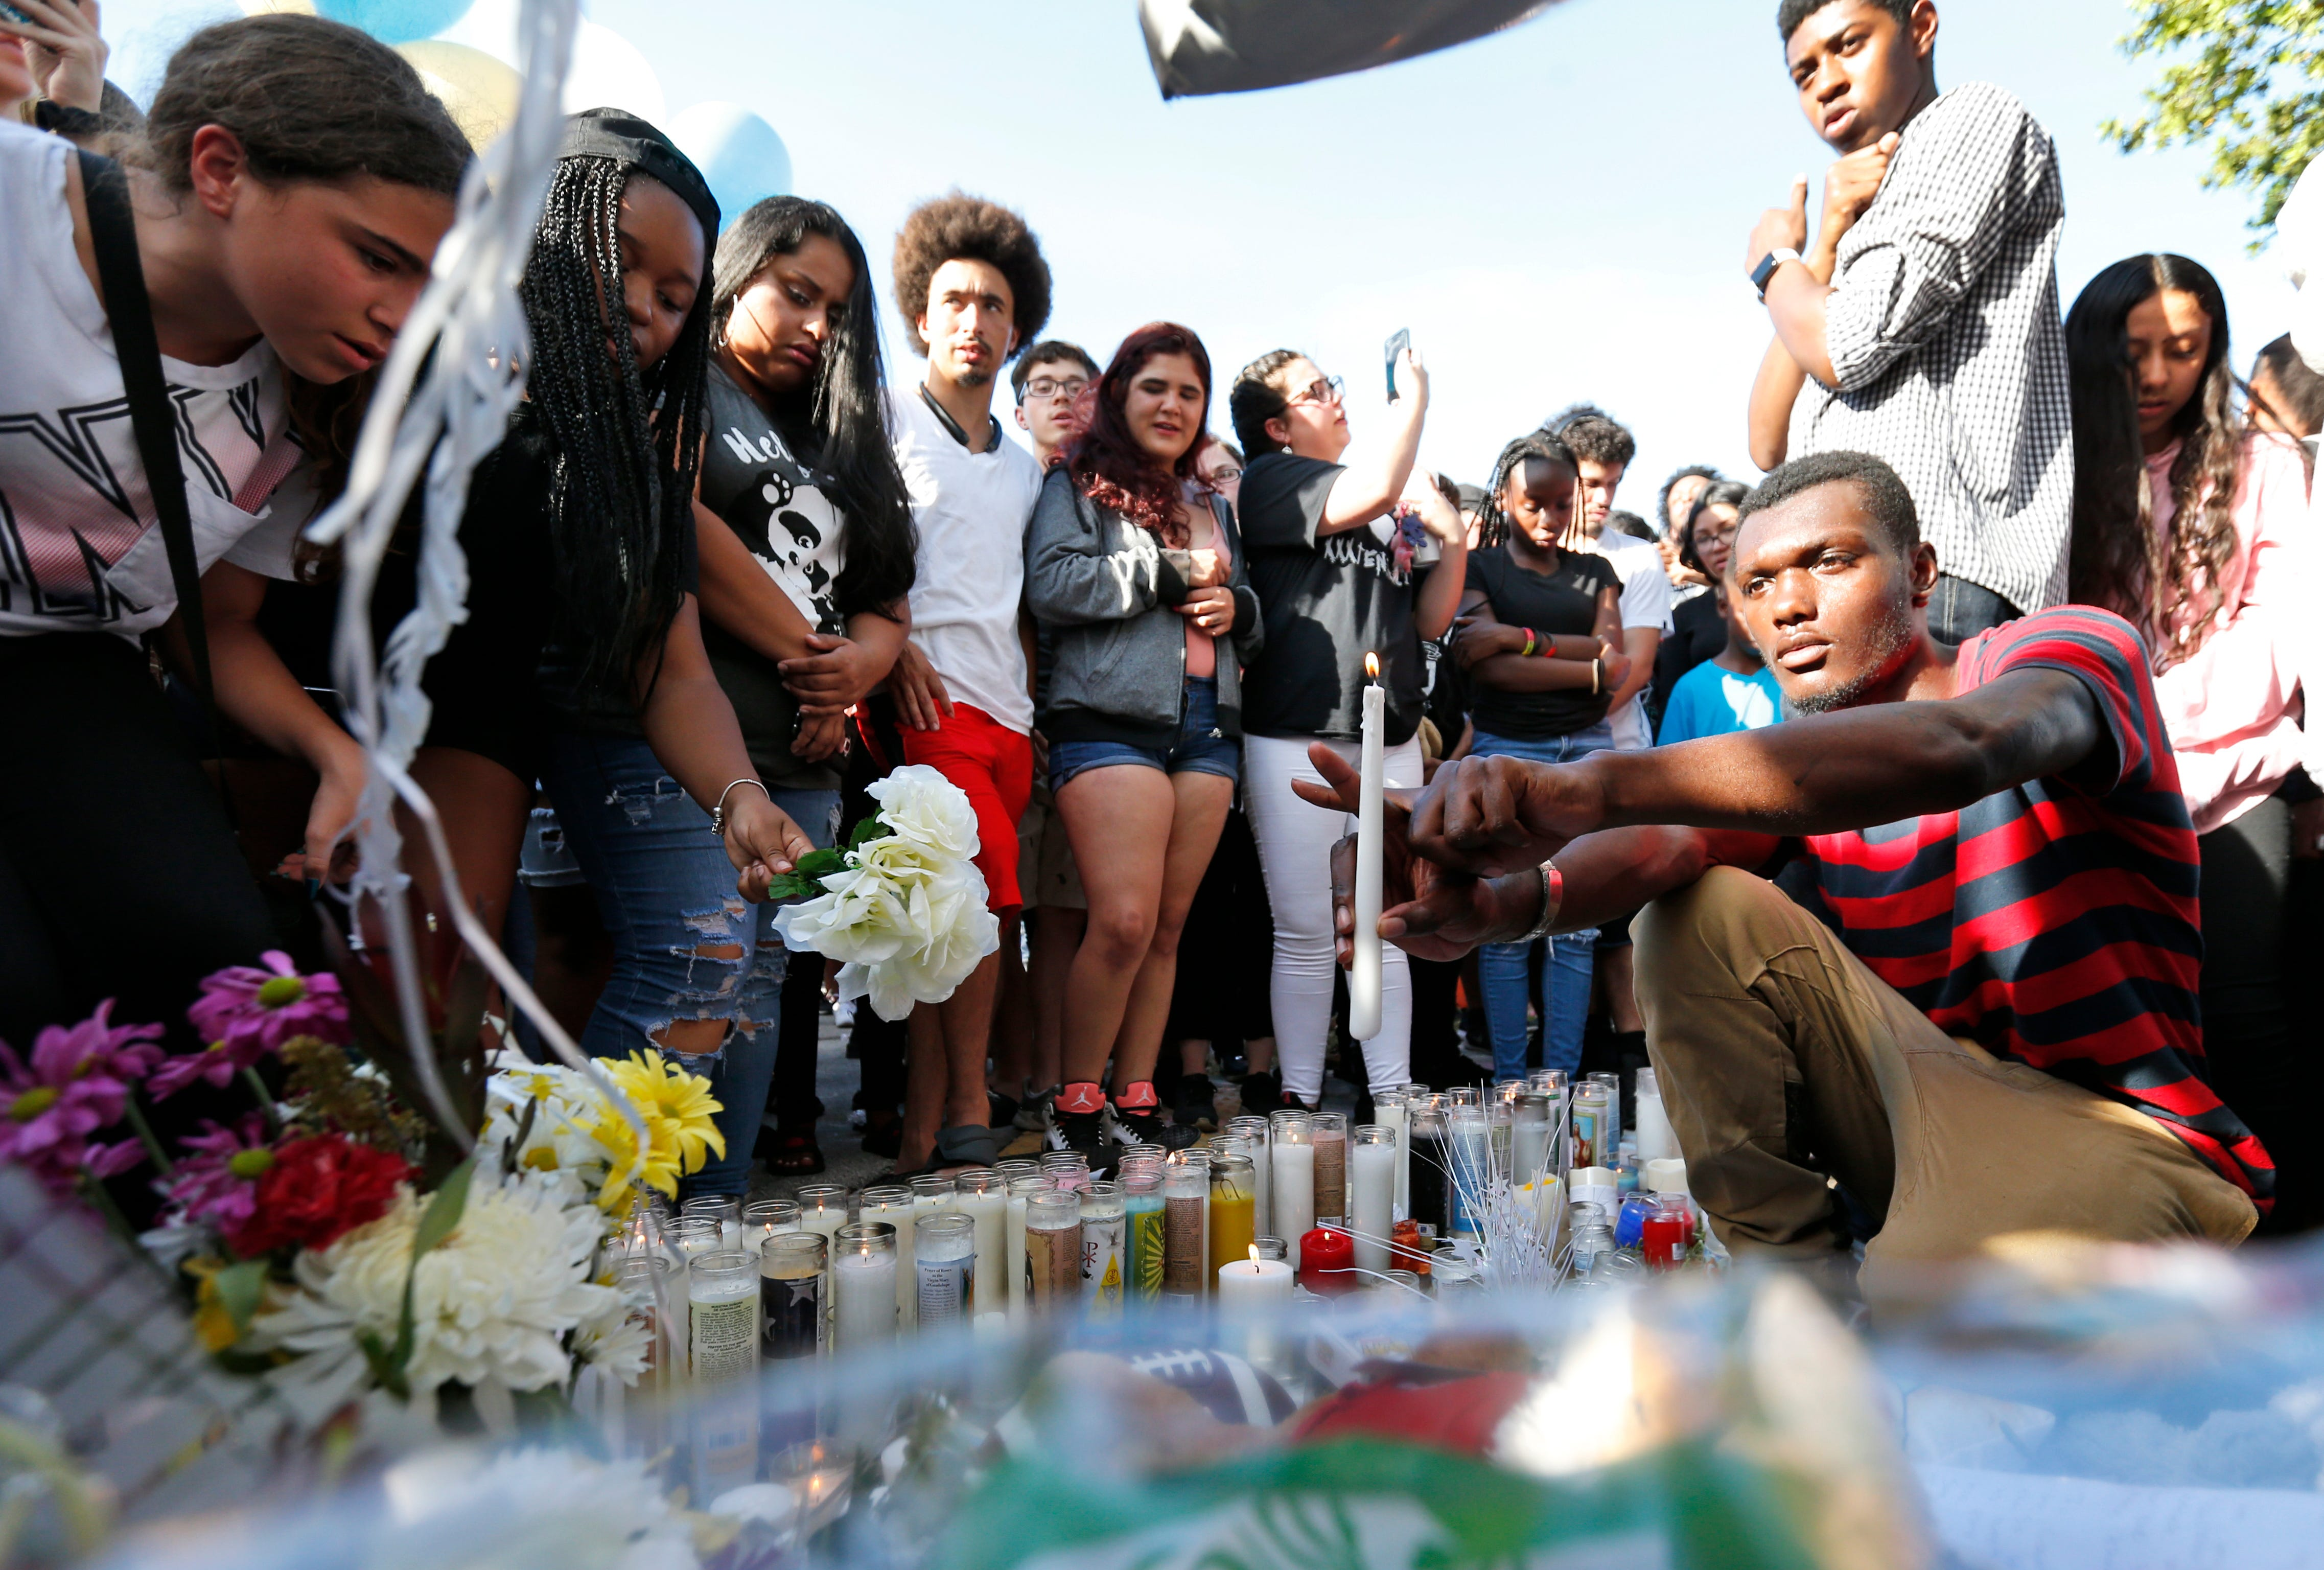 xxxtentacion-shooting-fans-mourn-rapper-as-detectives-search-for-killers